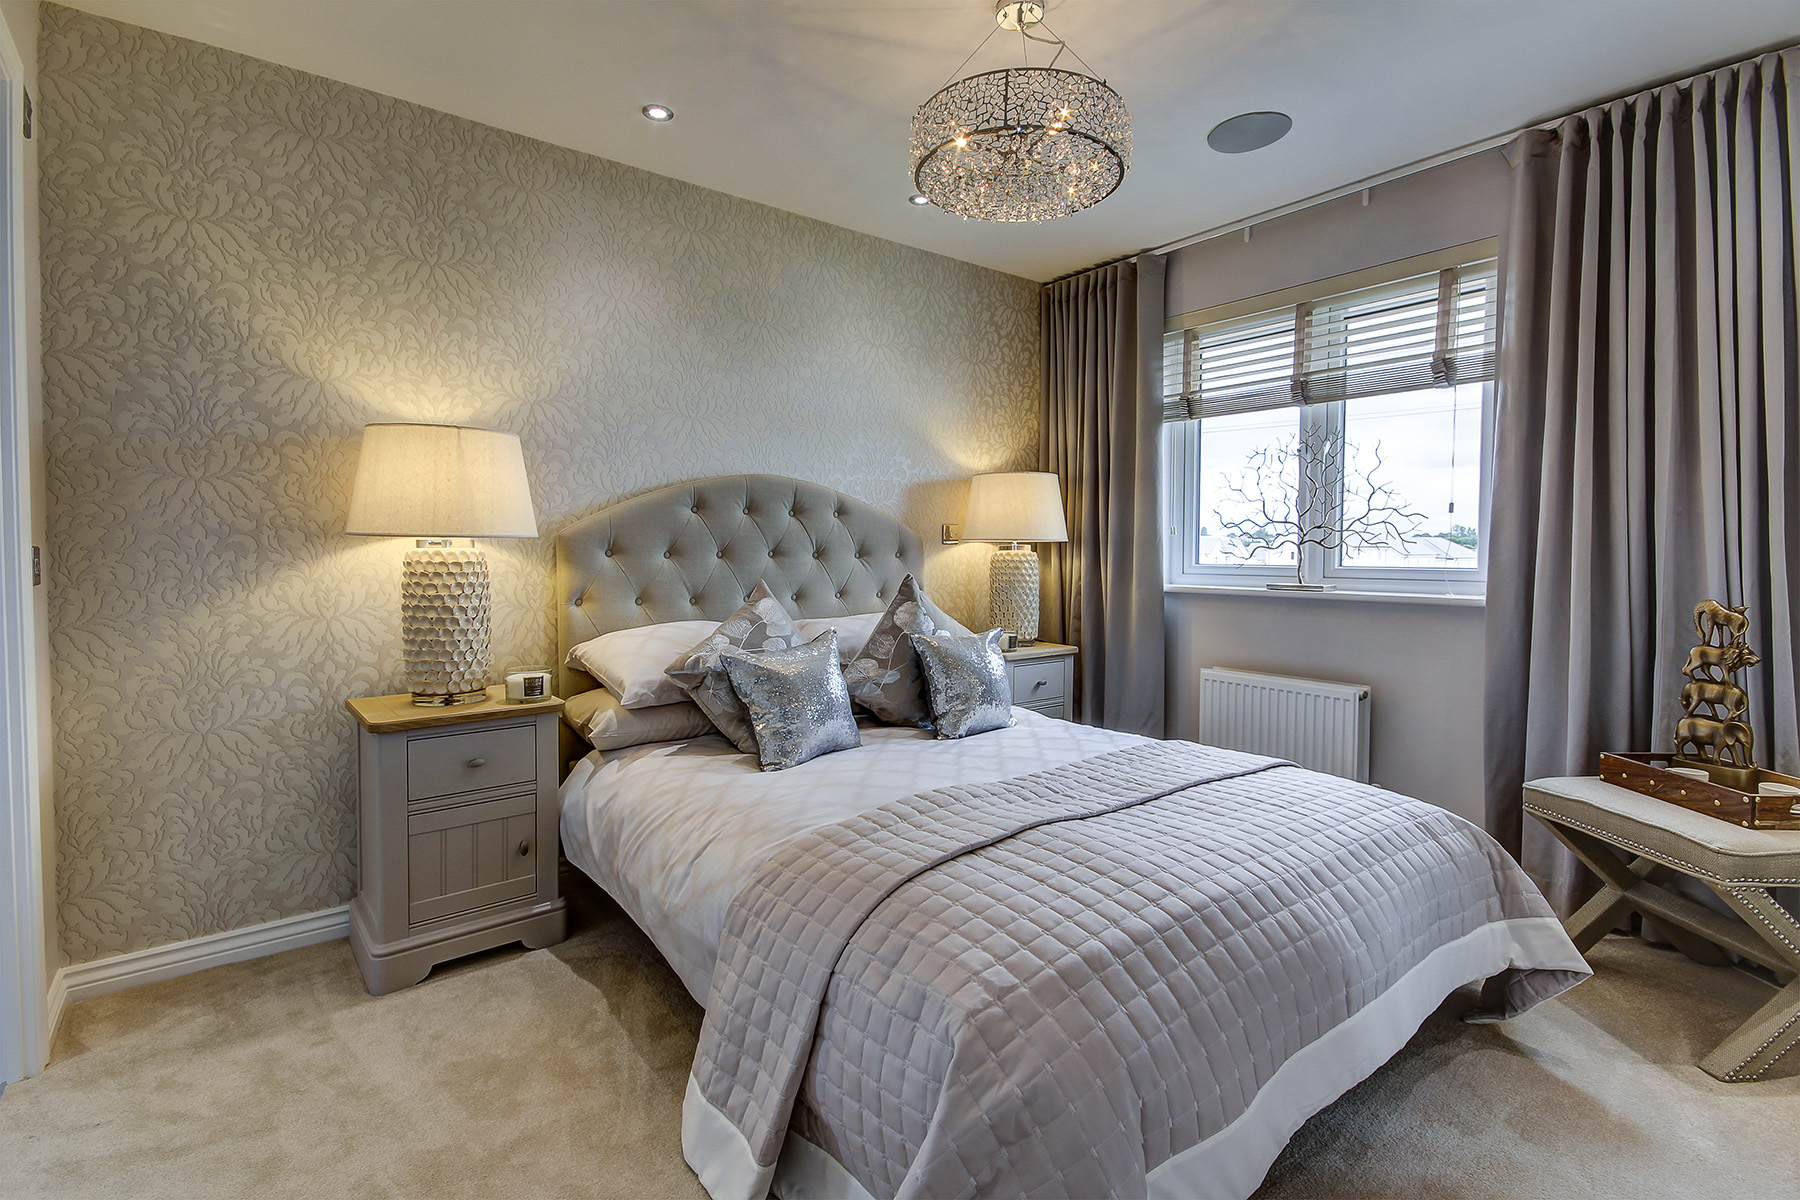 Broomhouse - Douglas - Bedroom 1